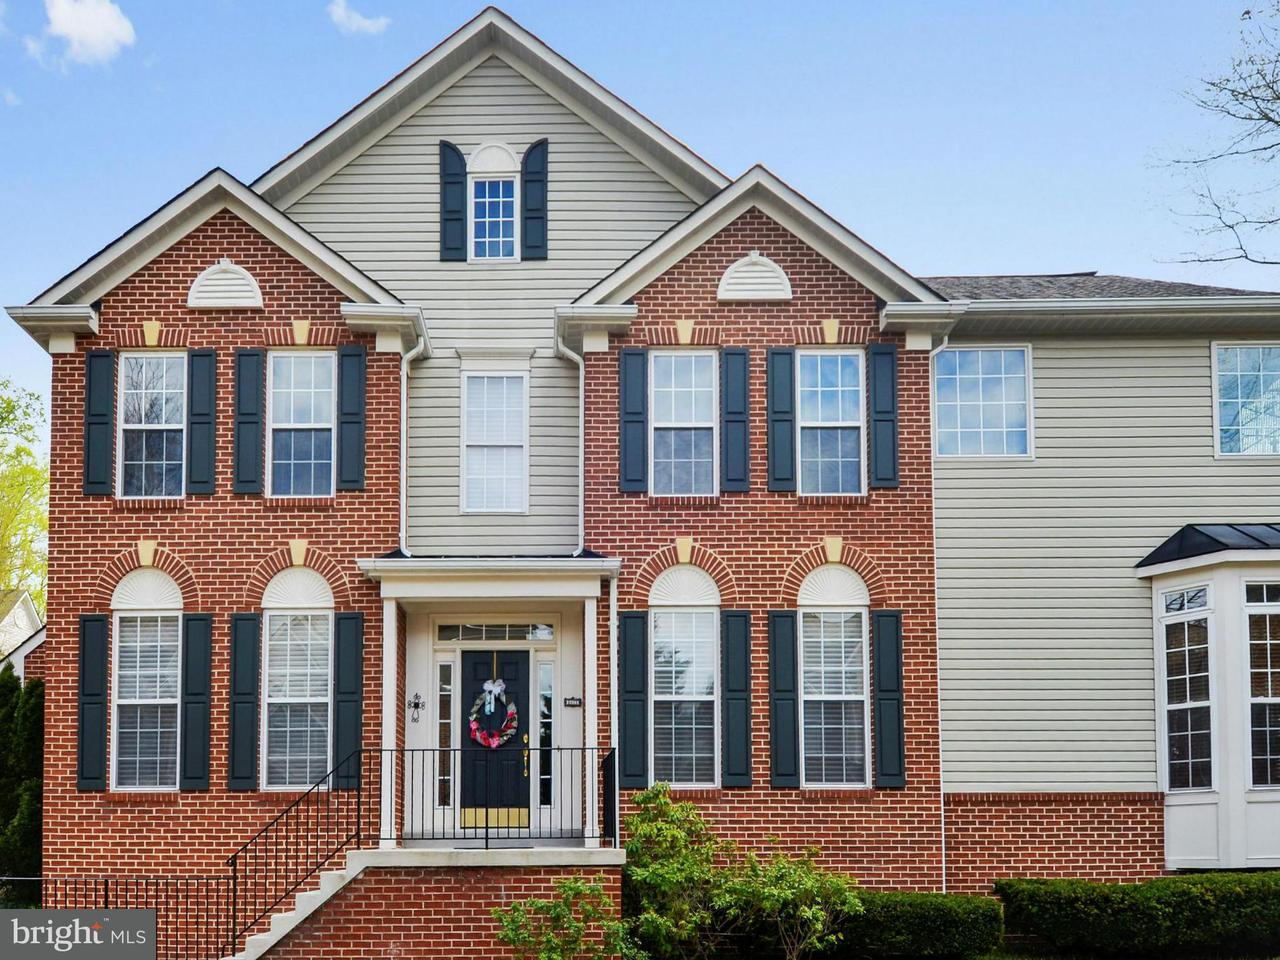 Single Family Home for Sale at 3453 BARRISTER'S KEEPE Circle 3453 BARRISTER'S KEEPE Circle Fairfax, Virginia 22031 United States